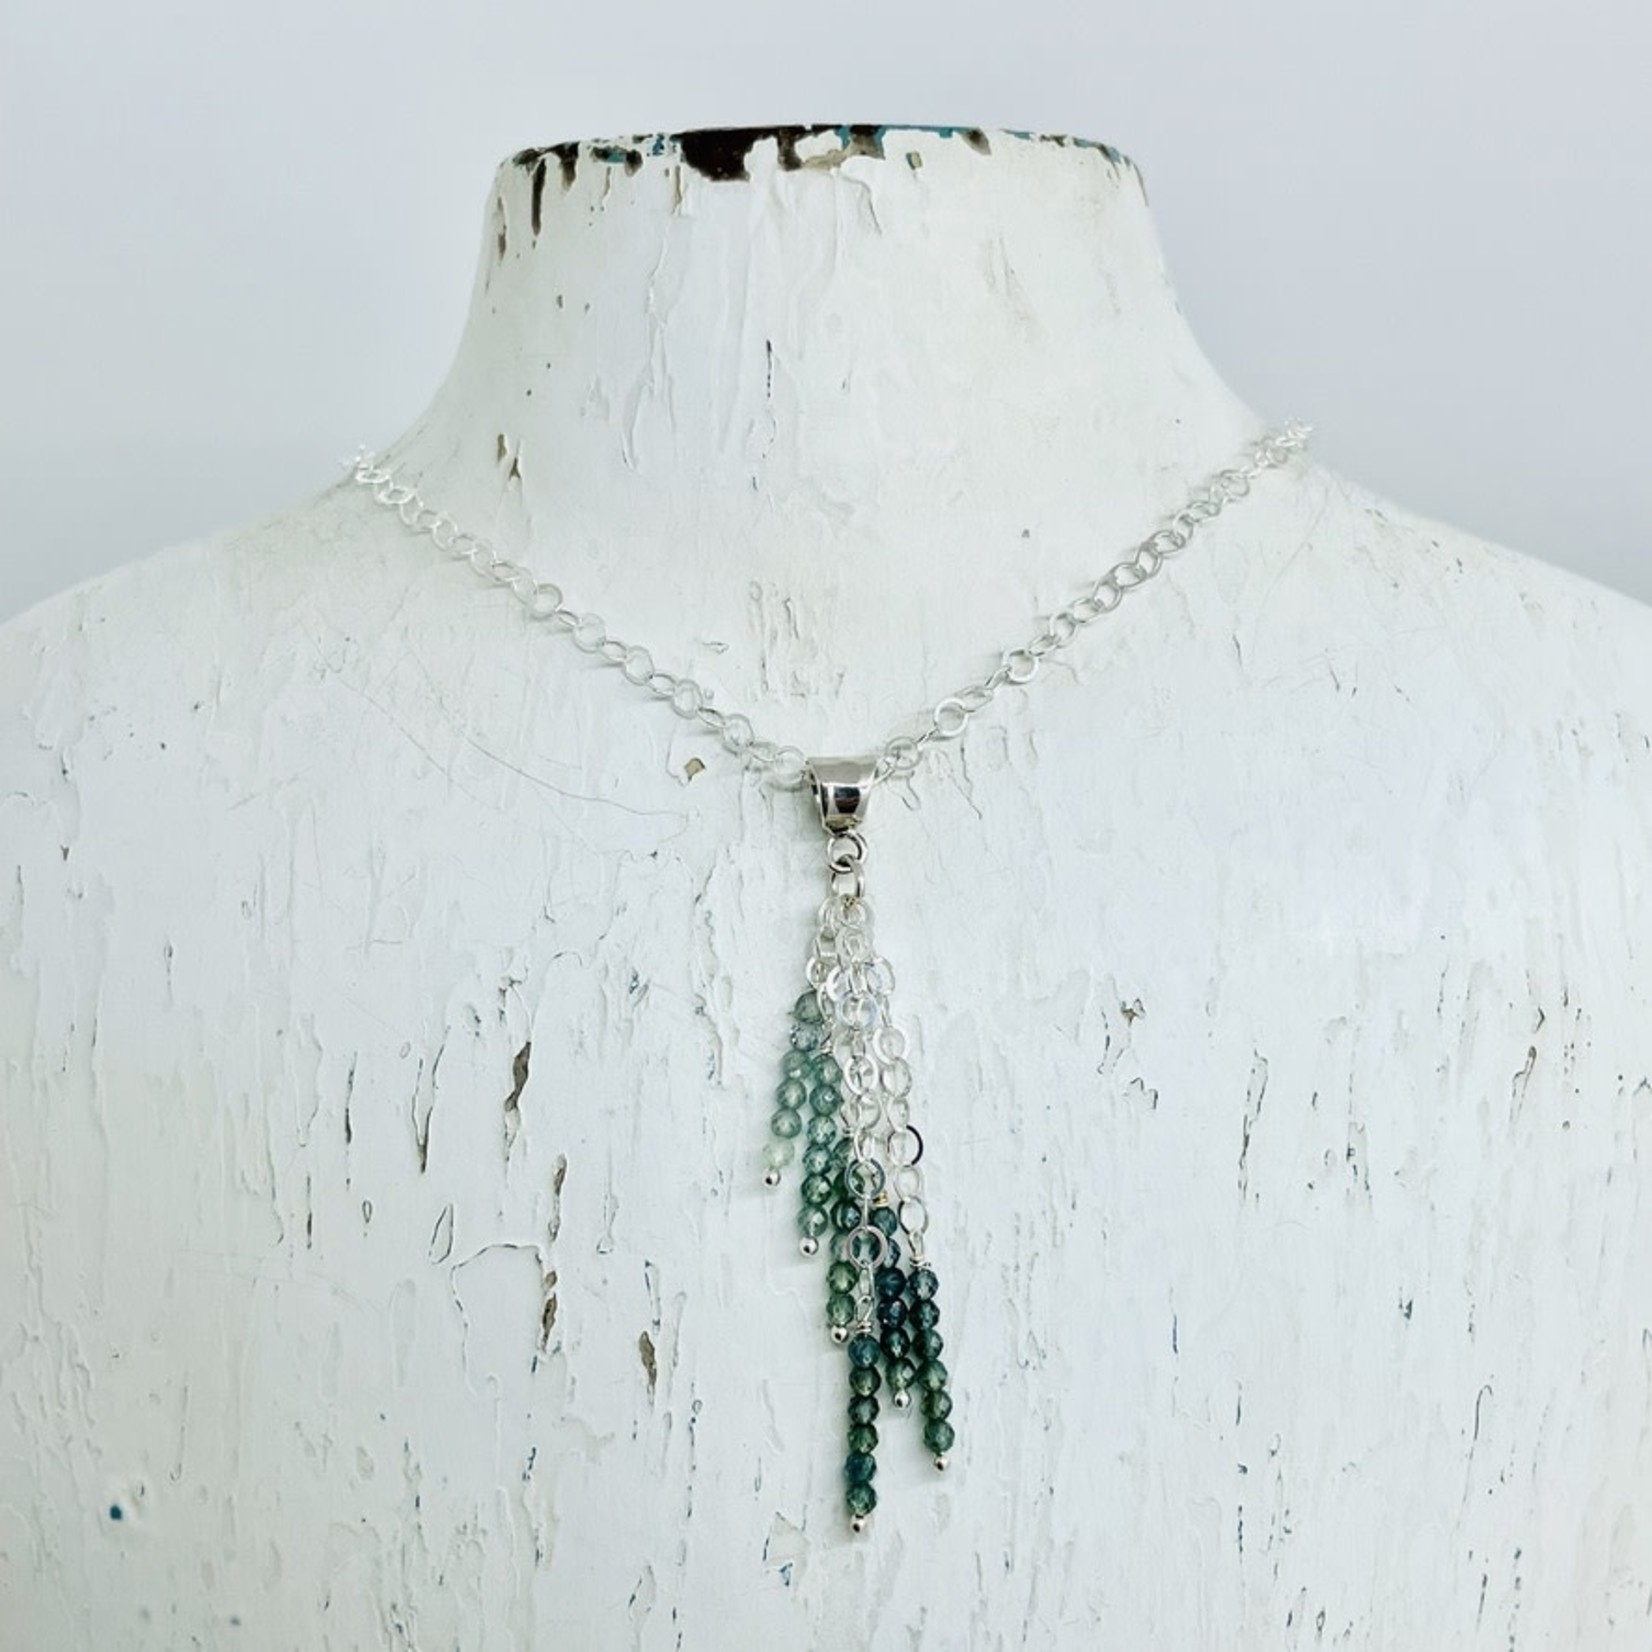 EVANKNOX Handmade Necklace with 6 groups 5 each green sapphires on hammered bail